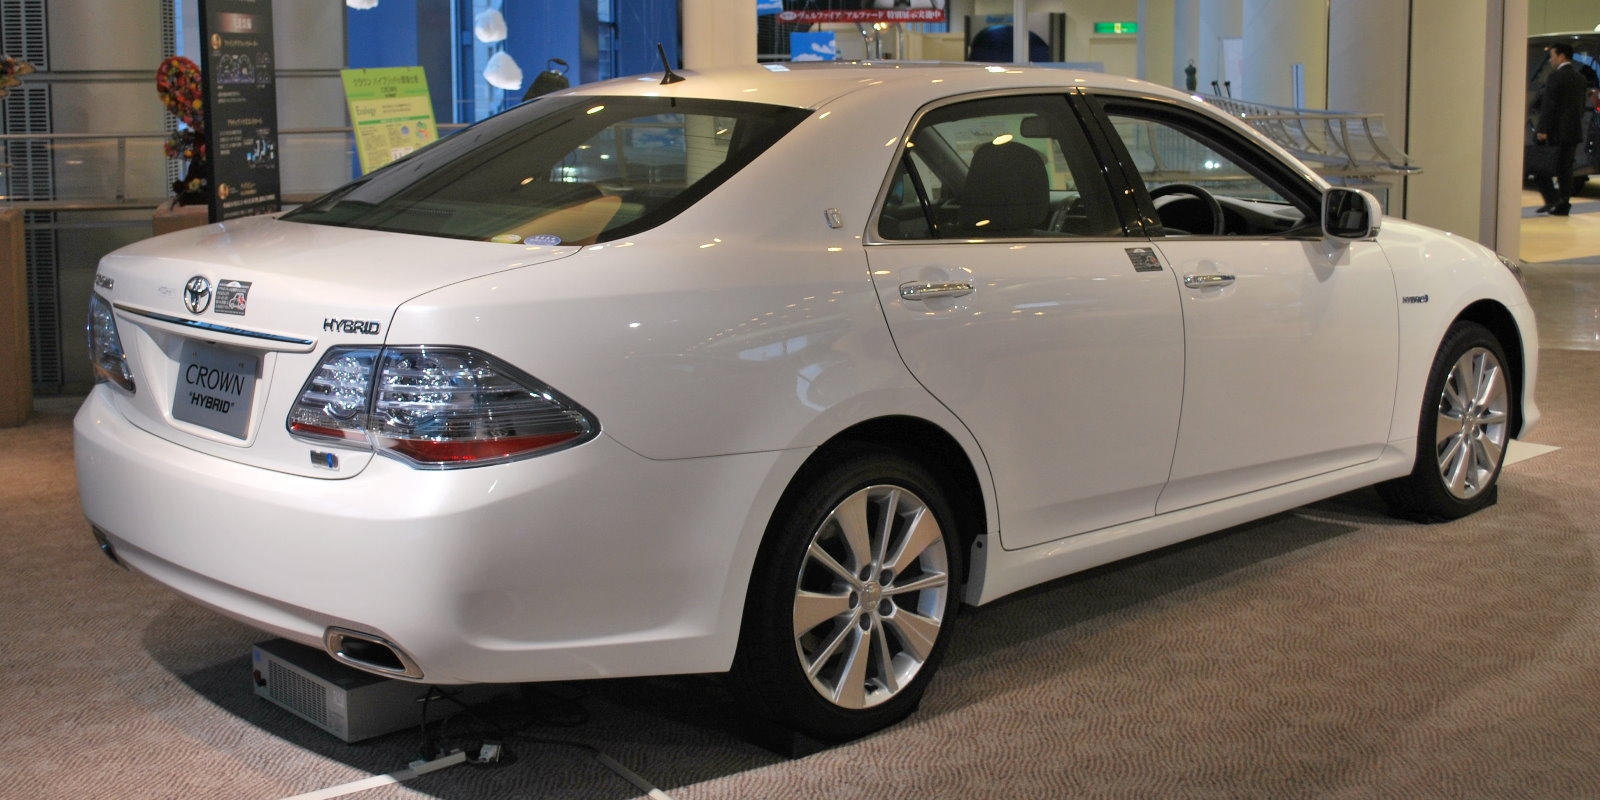 2011 toyota crown hybrid - photo #40